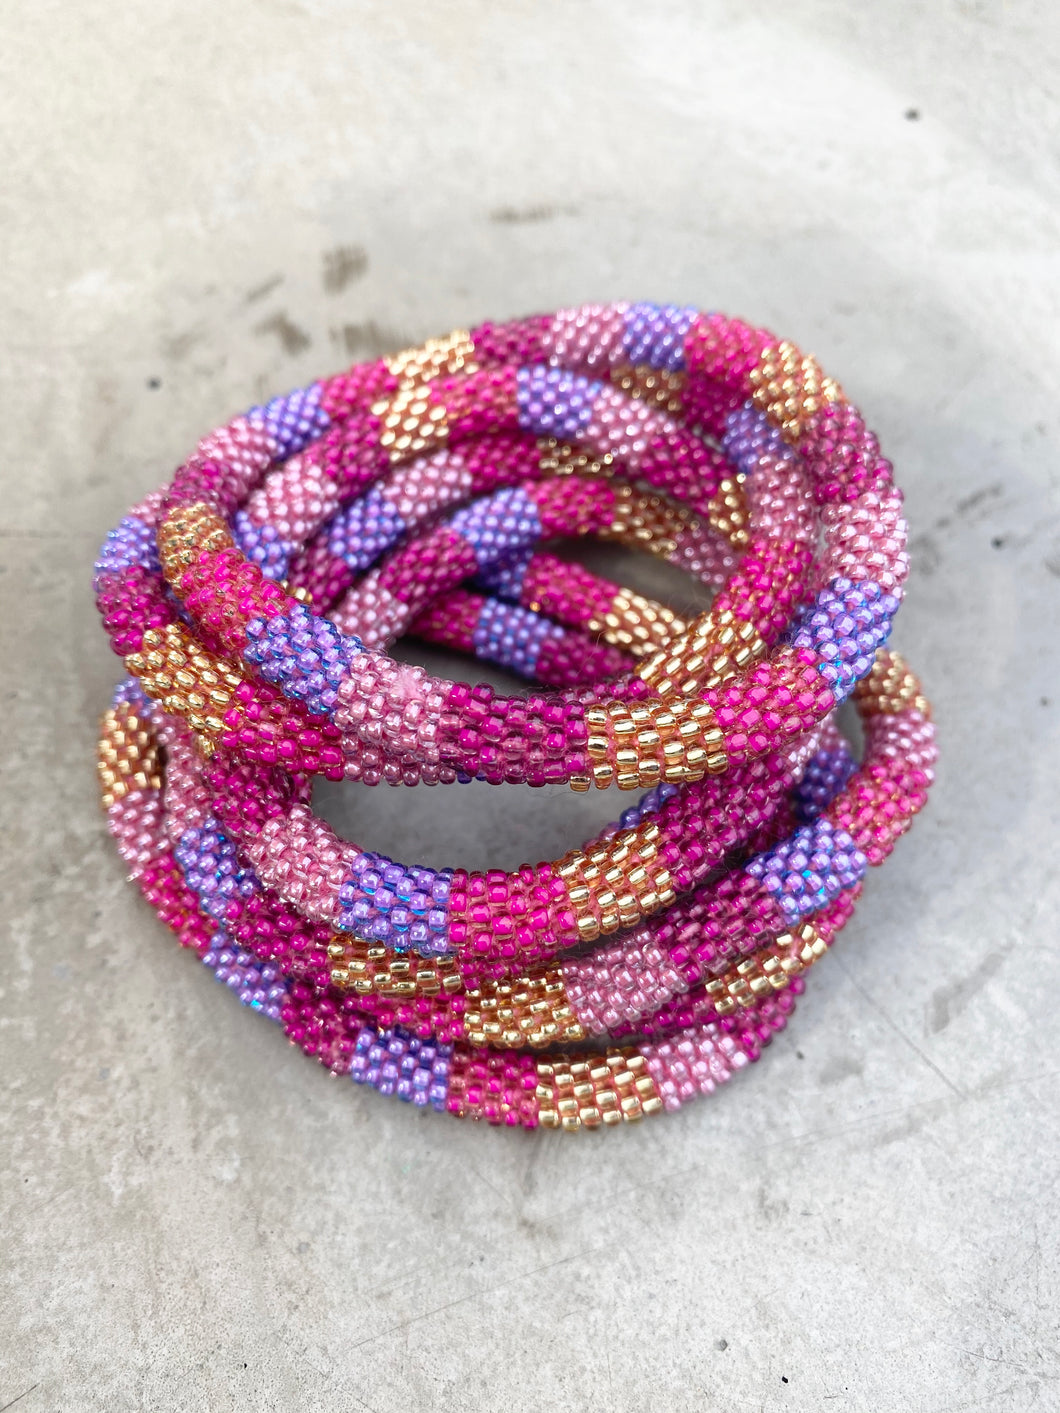 MIXED BERRY BRACELET